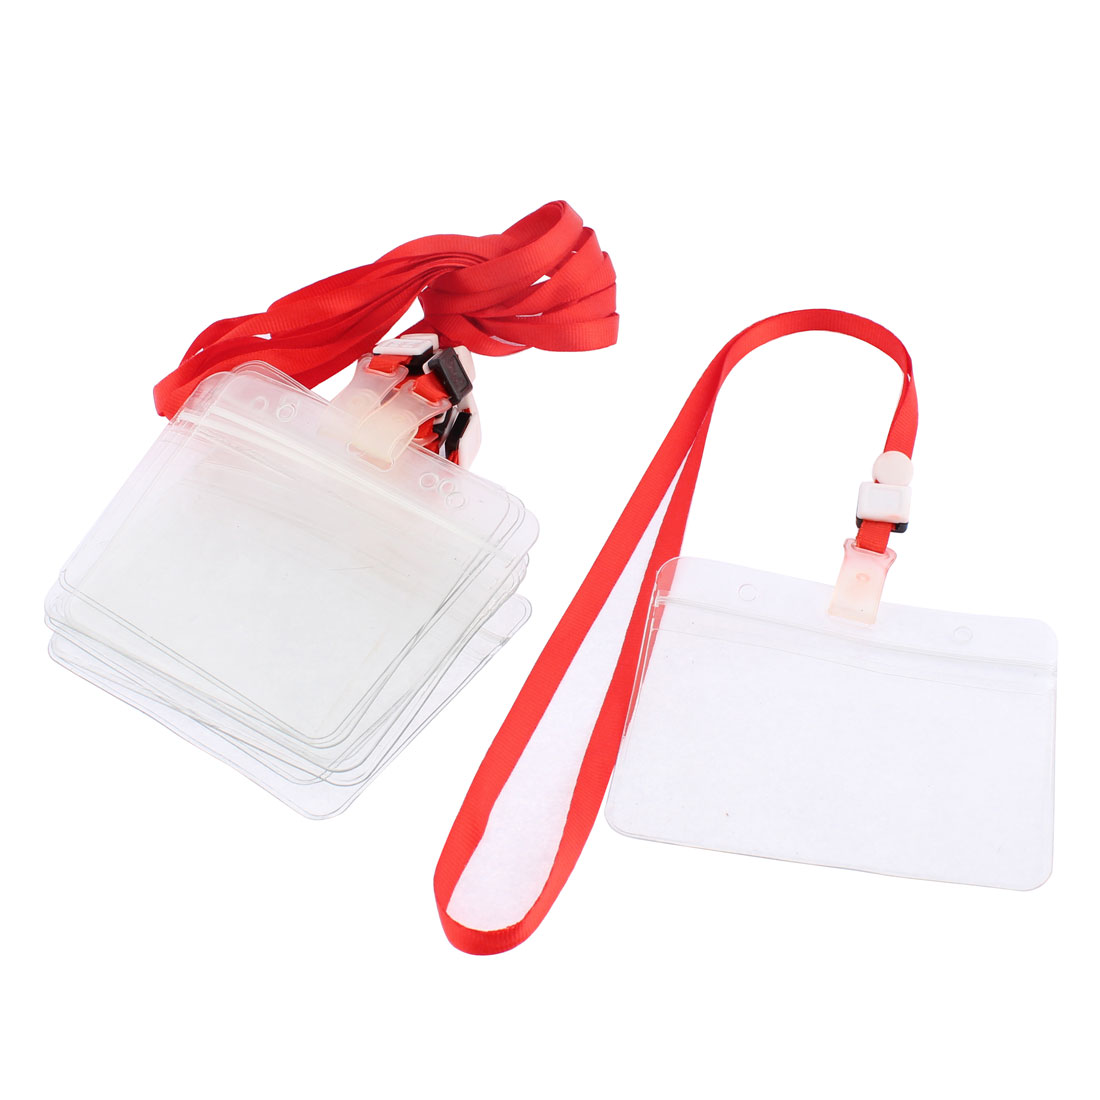 Clear ID Card Badge Horizontal Holder Red Neck Strap Lanyards 10Pcs